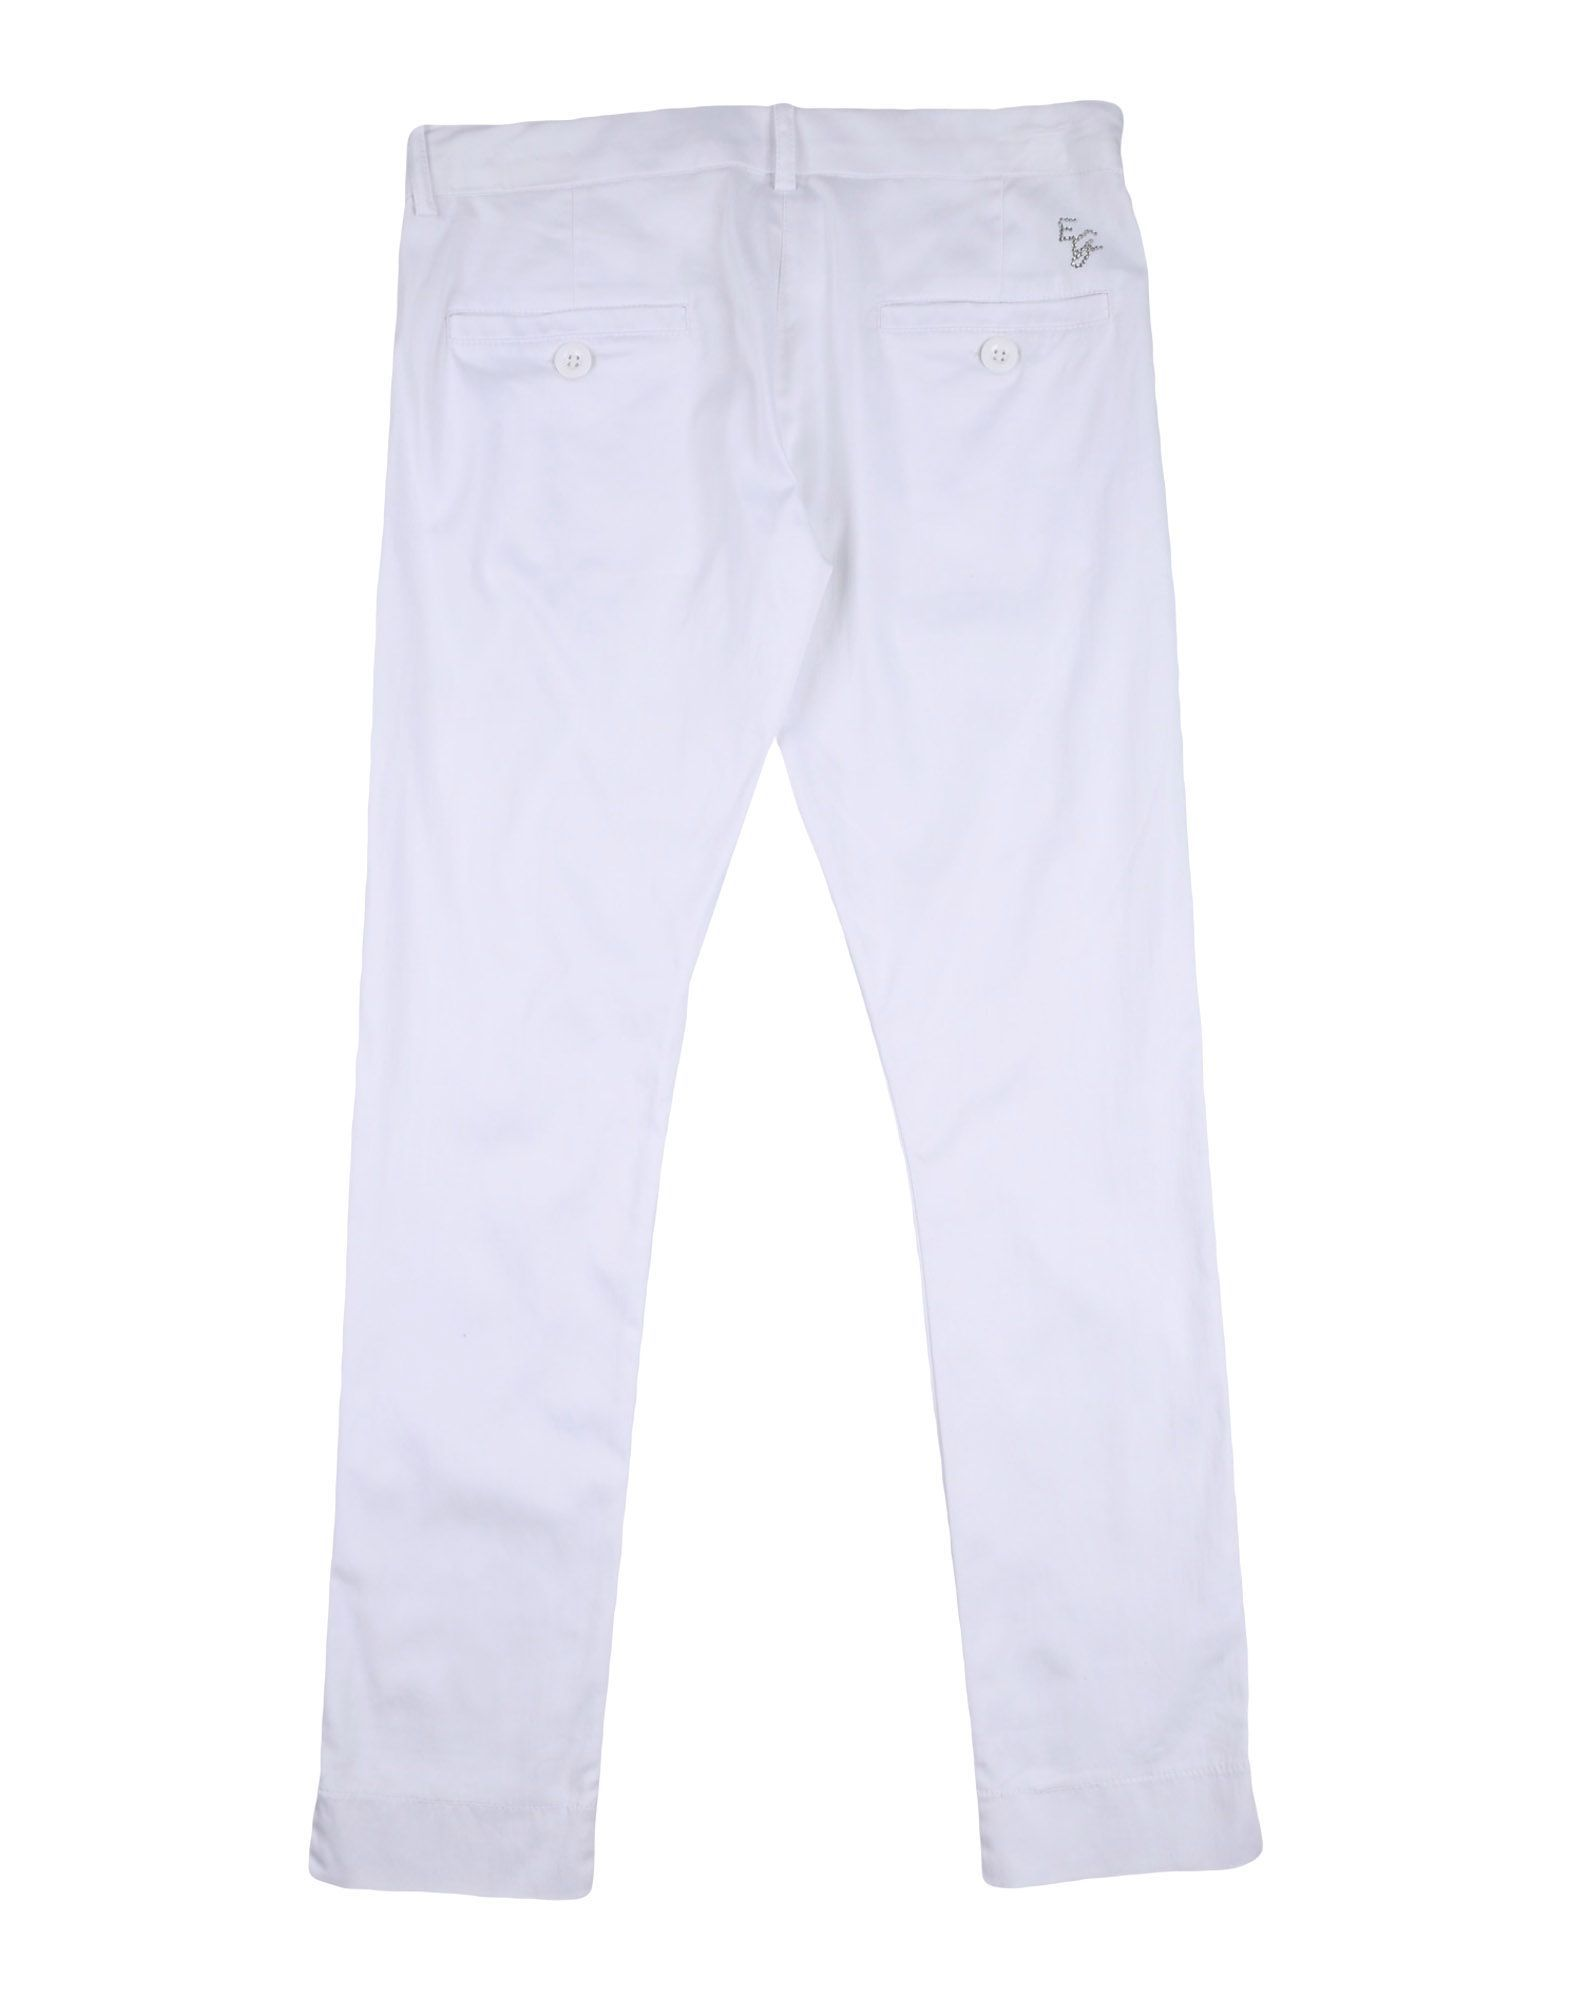 TROUSERS Elsy White Girl Cotton